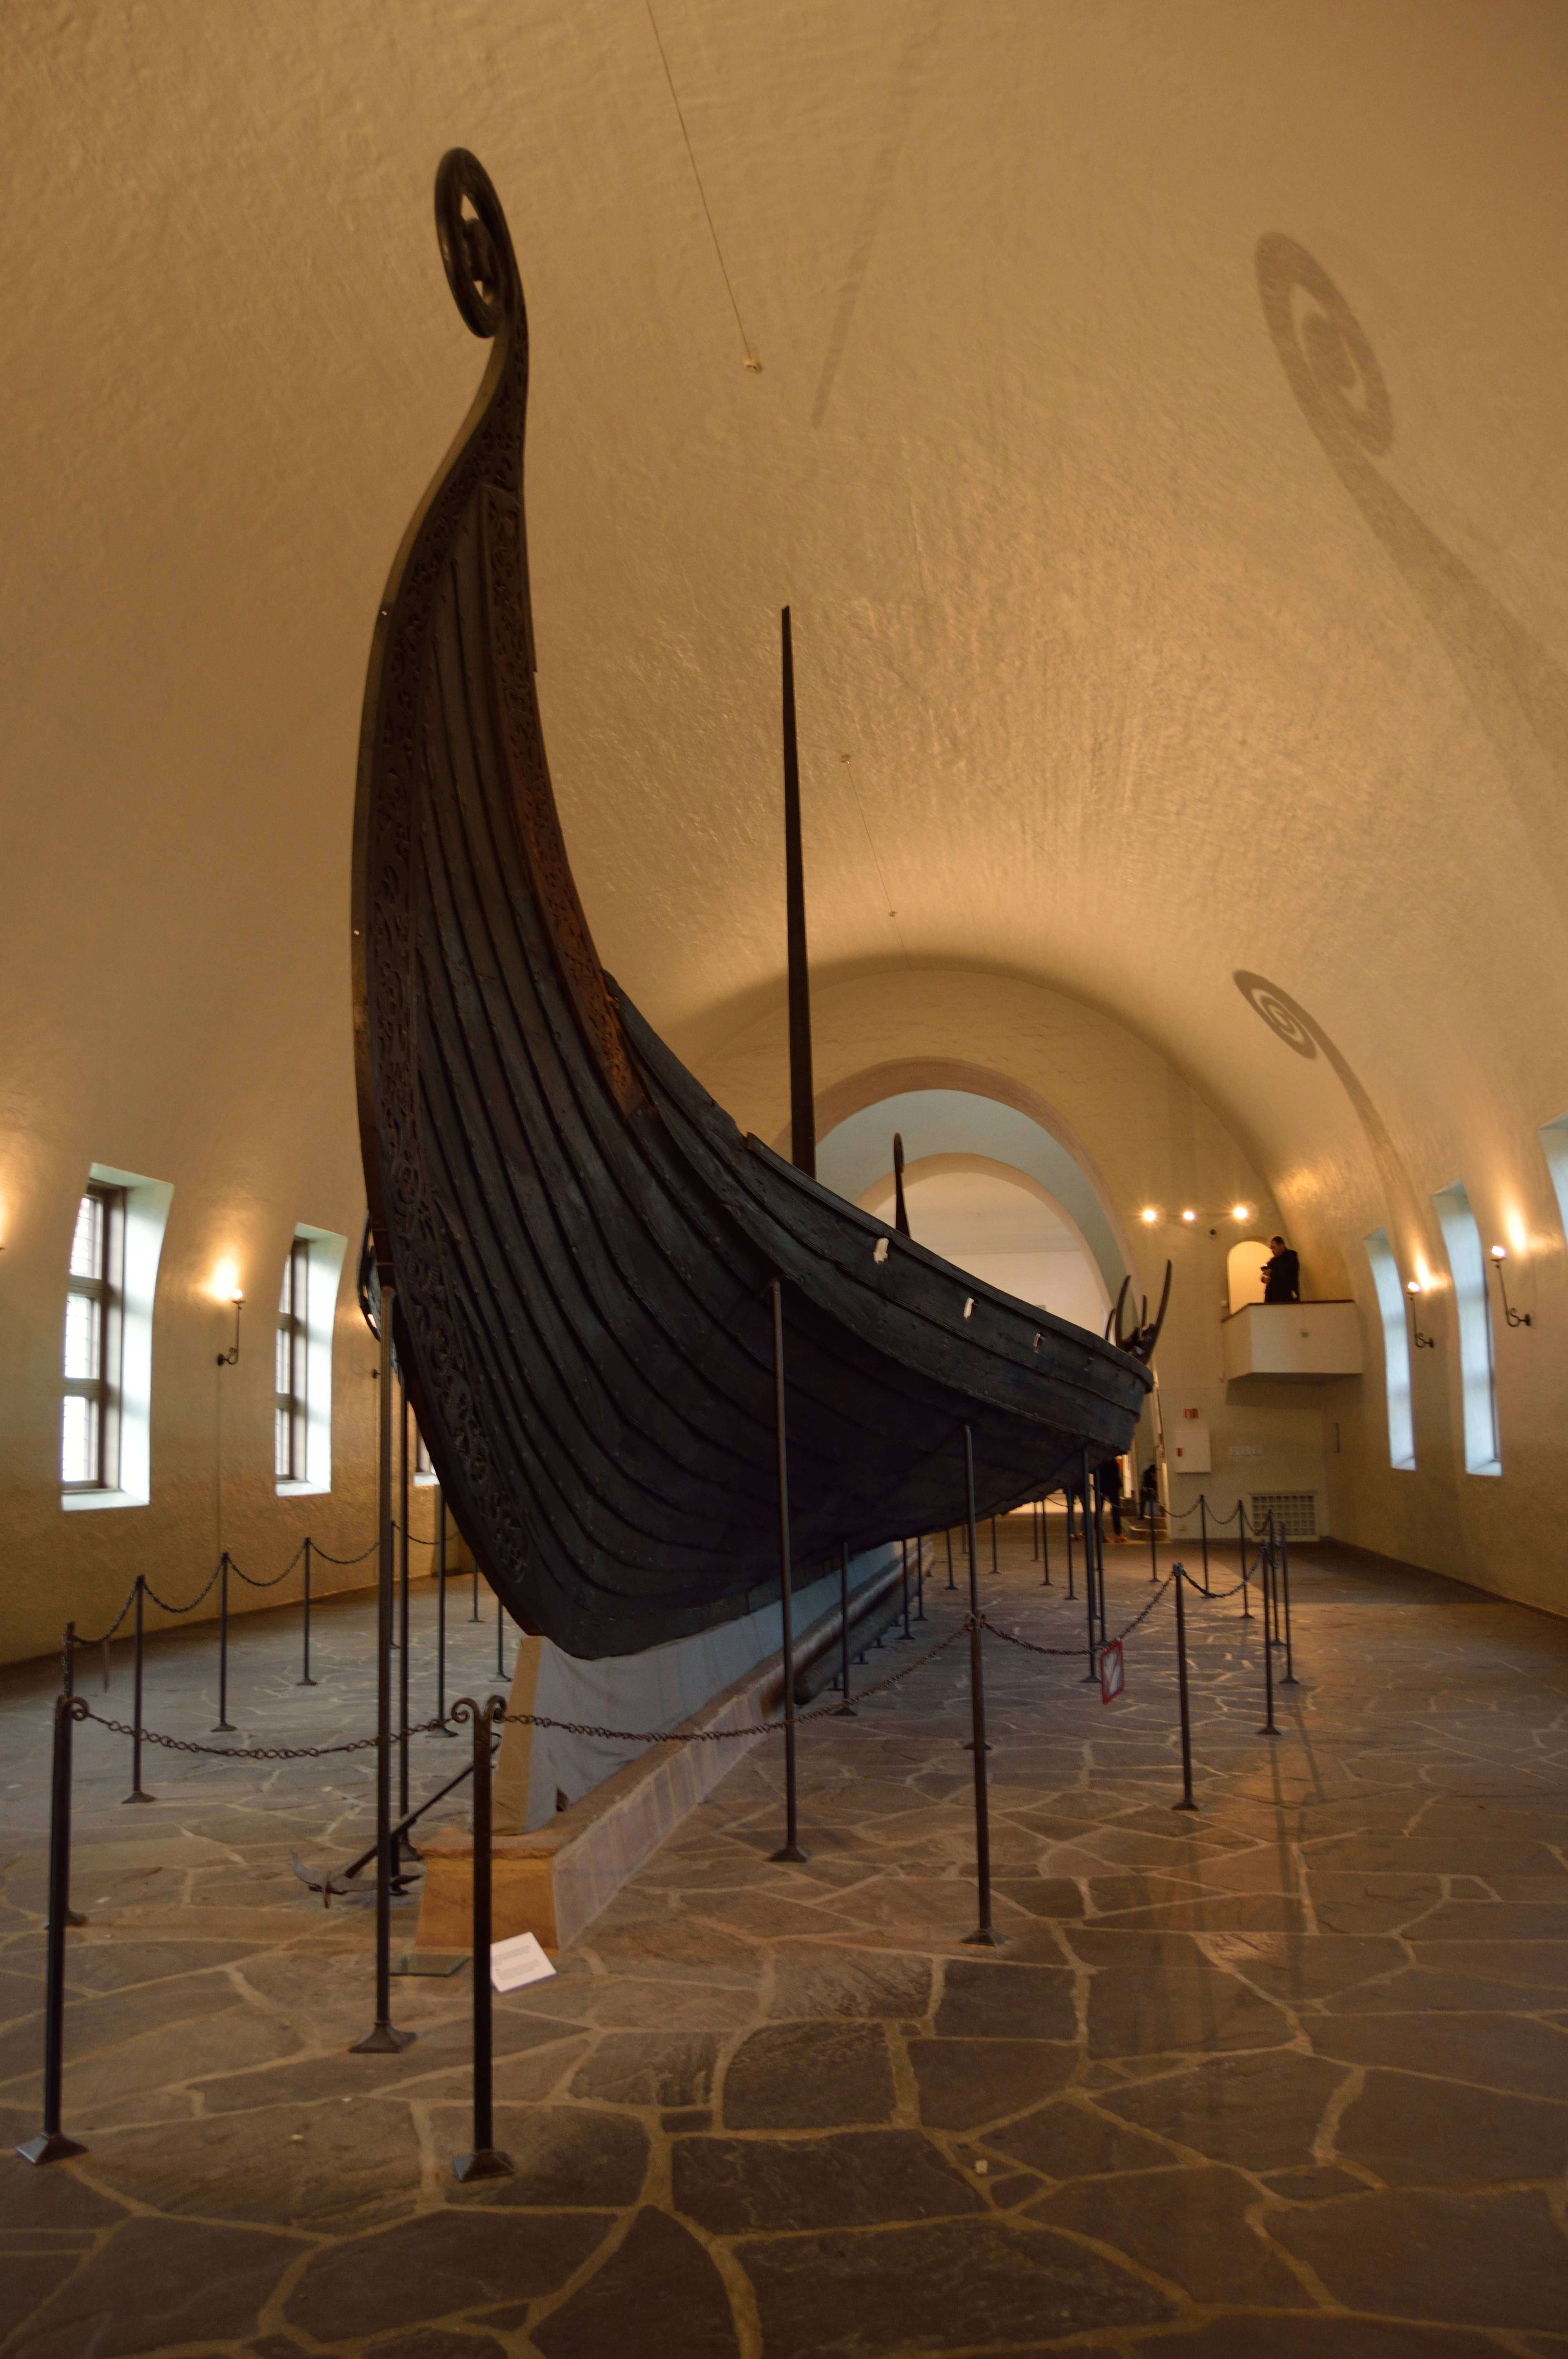 Oslo in 3 days: Discover the Vikings history